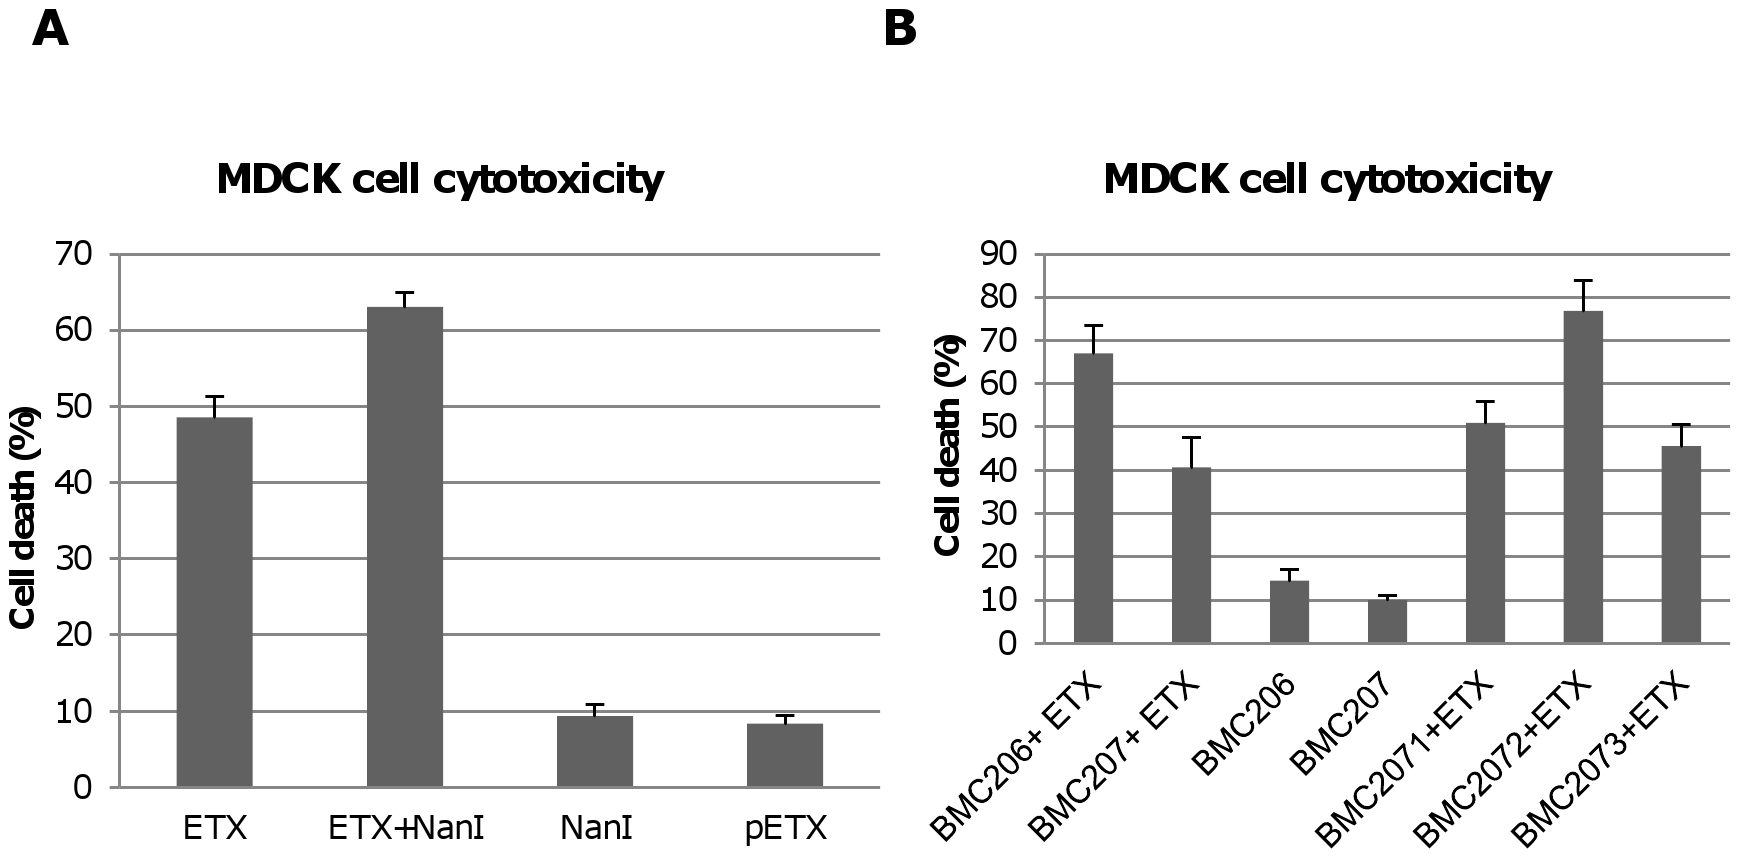 Sialidases increase cytotoxicity for MDCK cells.